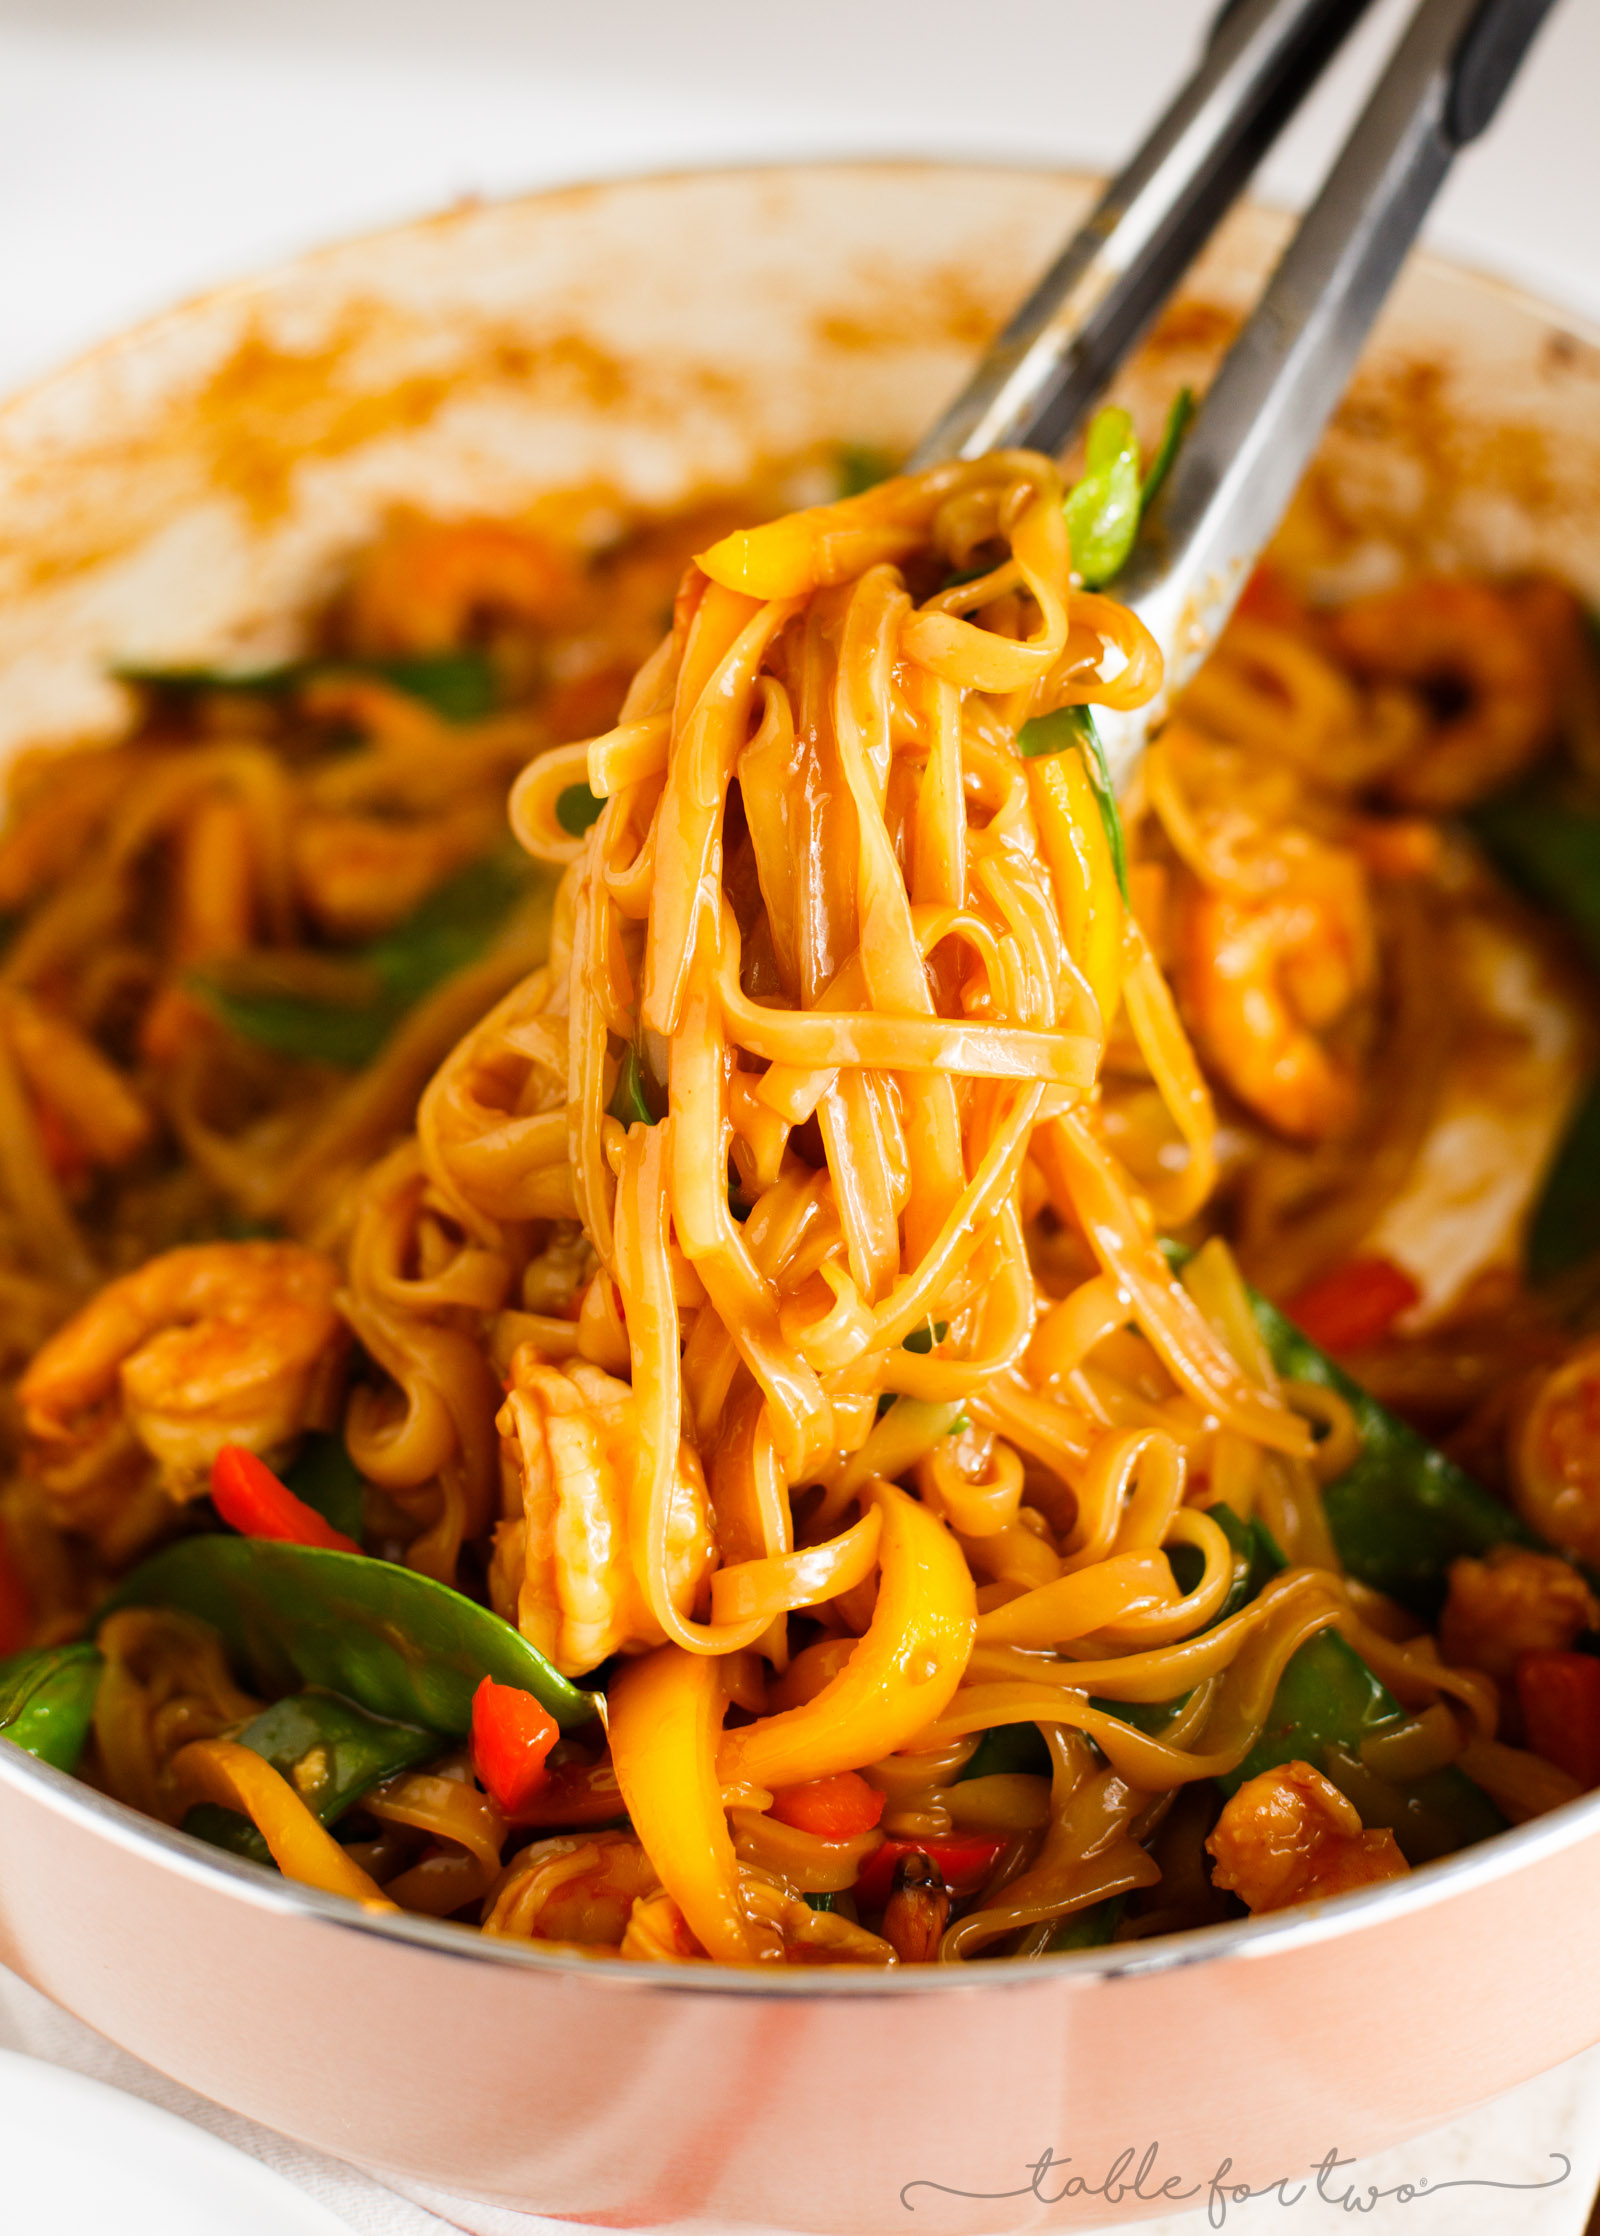 An easy and flavorful weeknight dish to satisfy your stir fry craving! This ginger garlic shrimp noodle stir fry is packed with everything your tastebuds will love and they